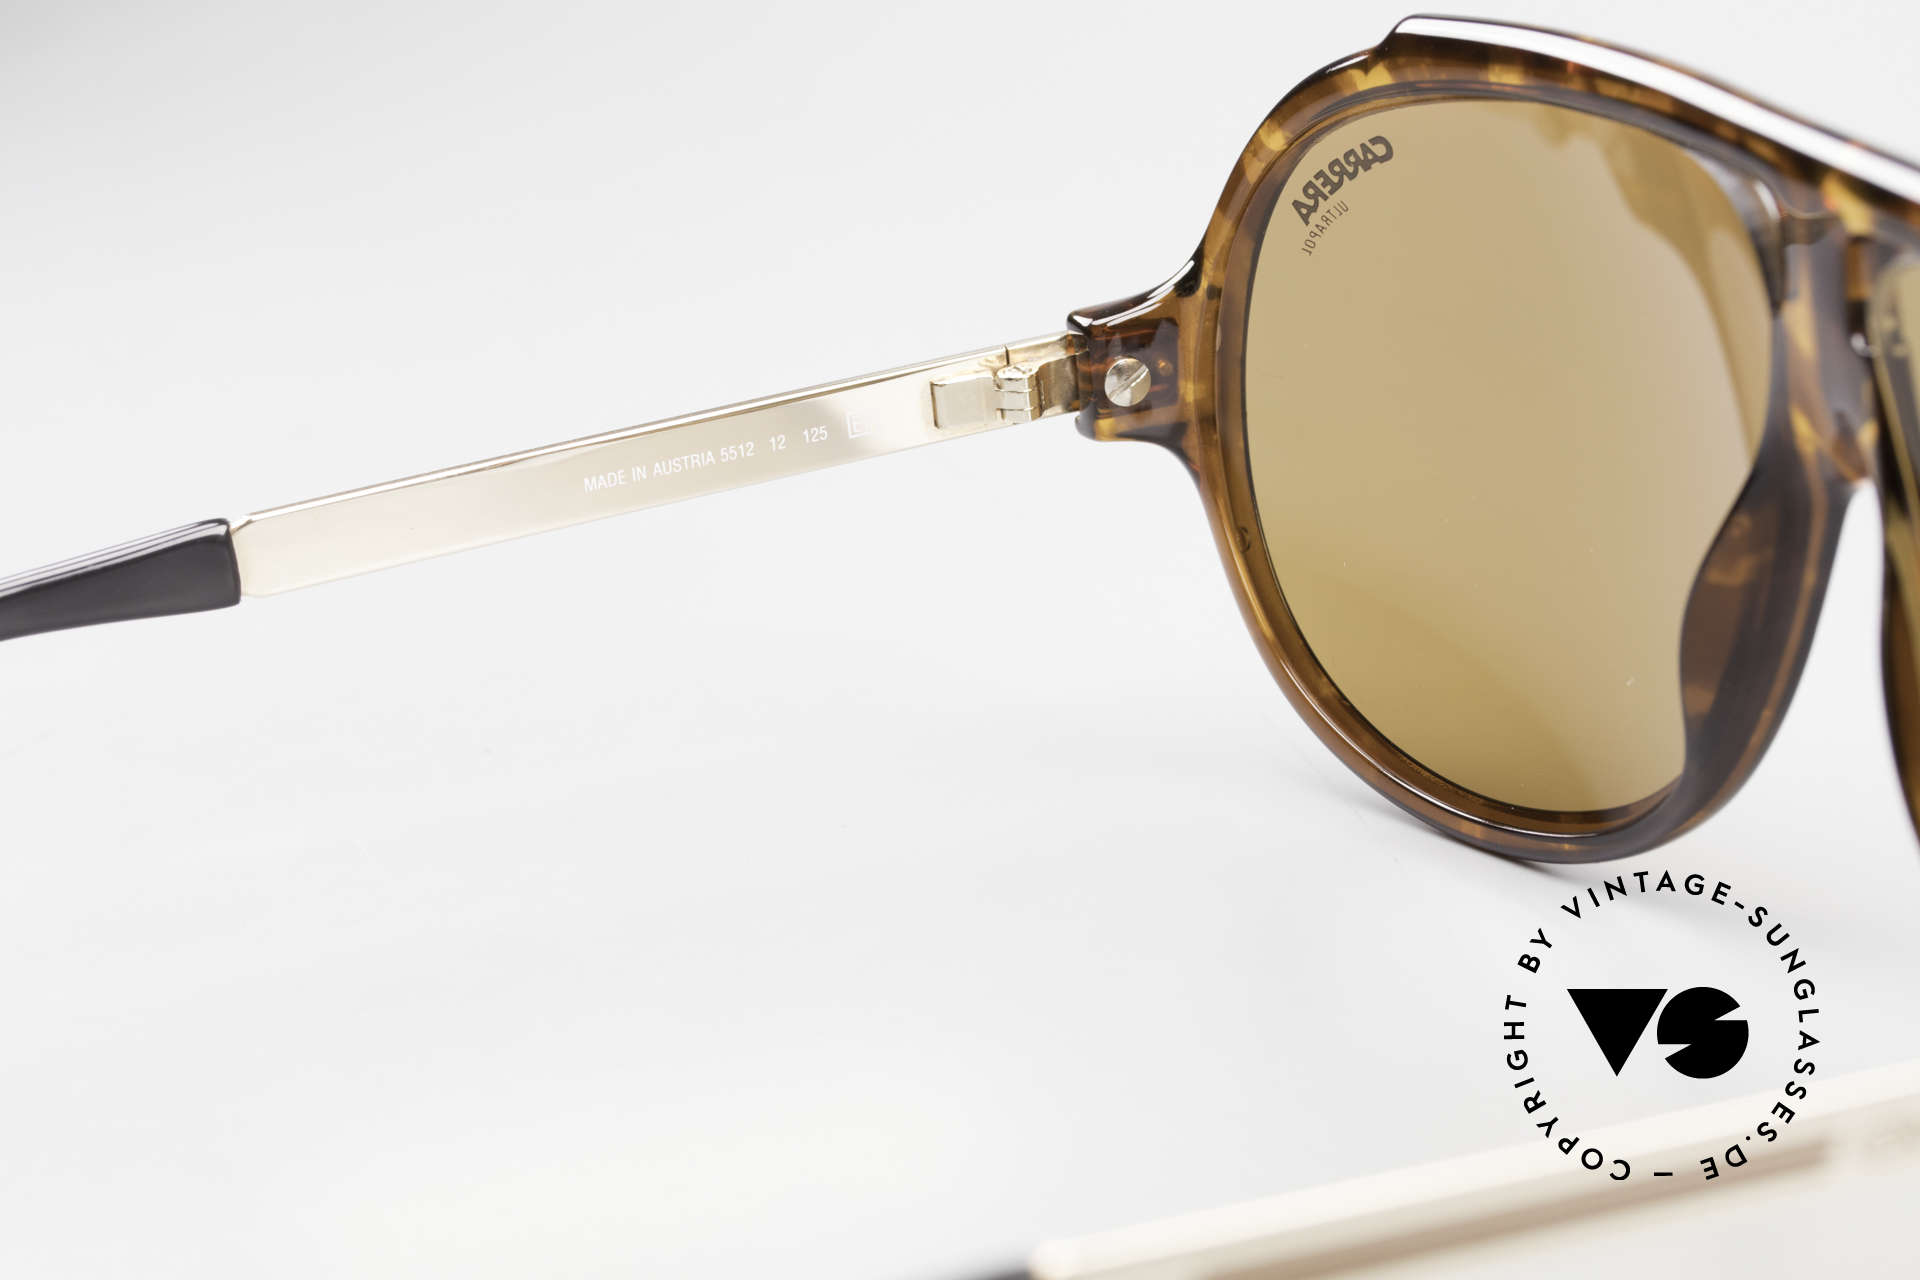 Carrera 5512 Polarized UltraPol Sun Lenses, reduced to 319,- Euro (left lens has two TINY scratches), Made for Men